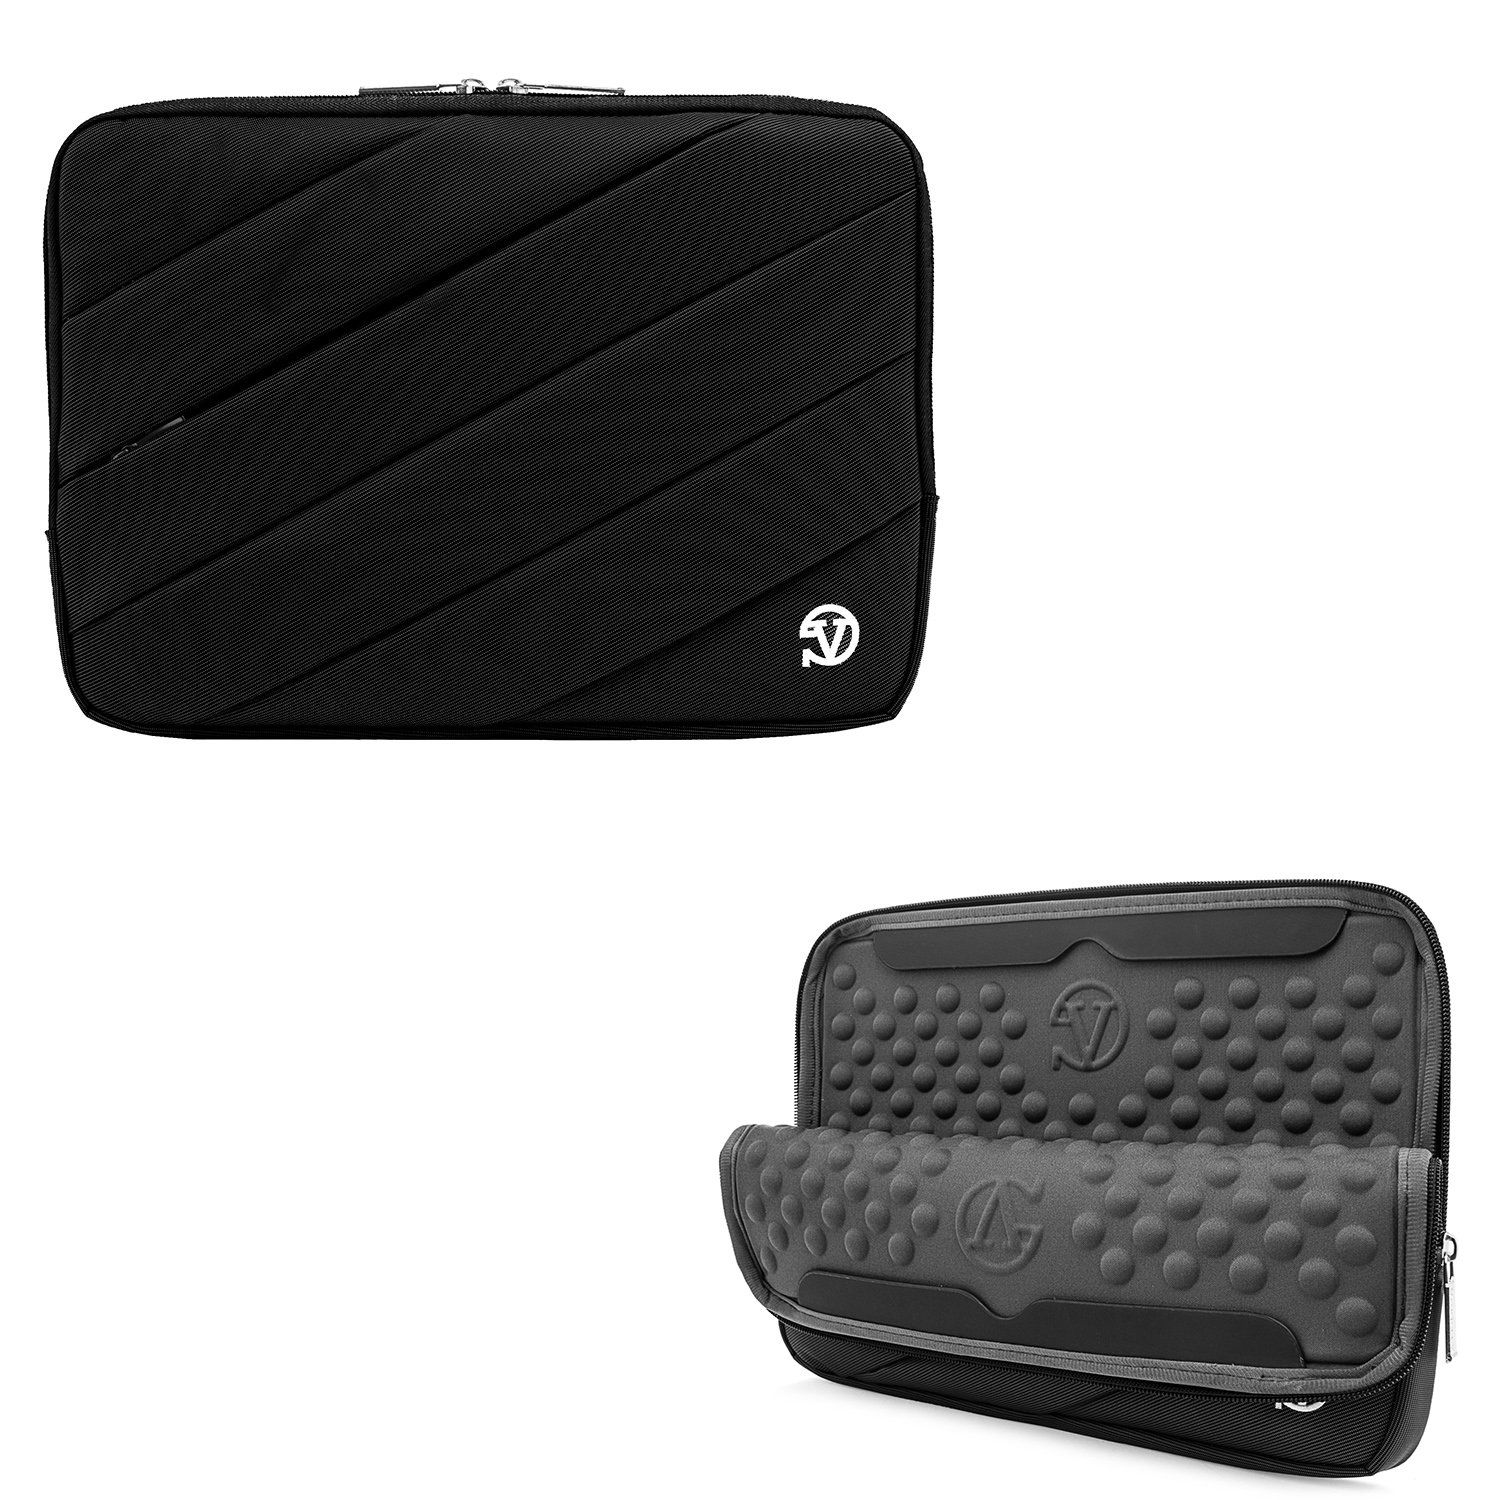 0a4b67c8dc5f Amazon.com: Fashion Tablet Sleeve Notebook Pouch Bag Carrying Case ...